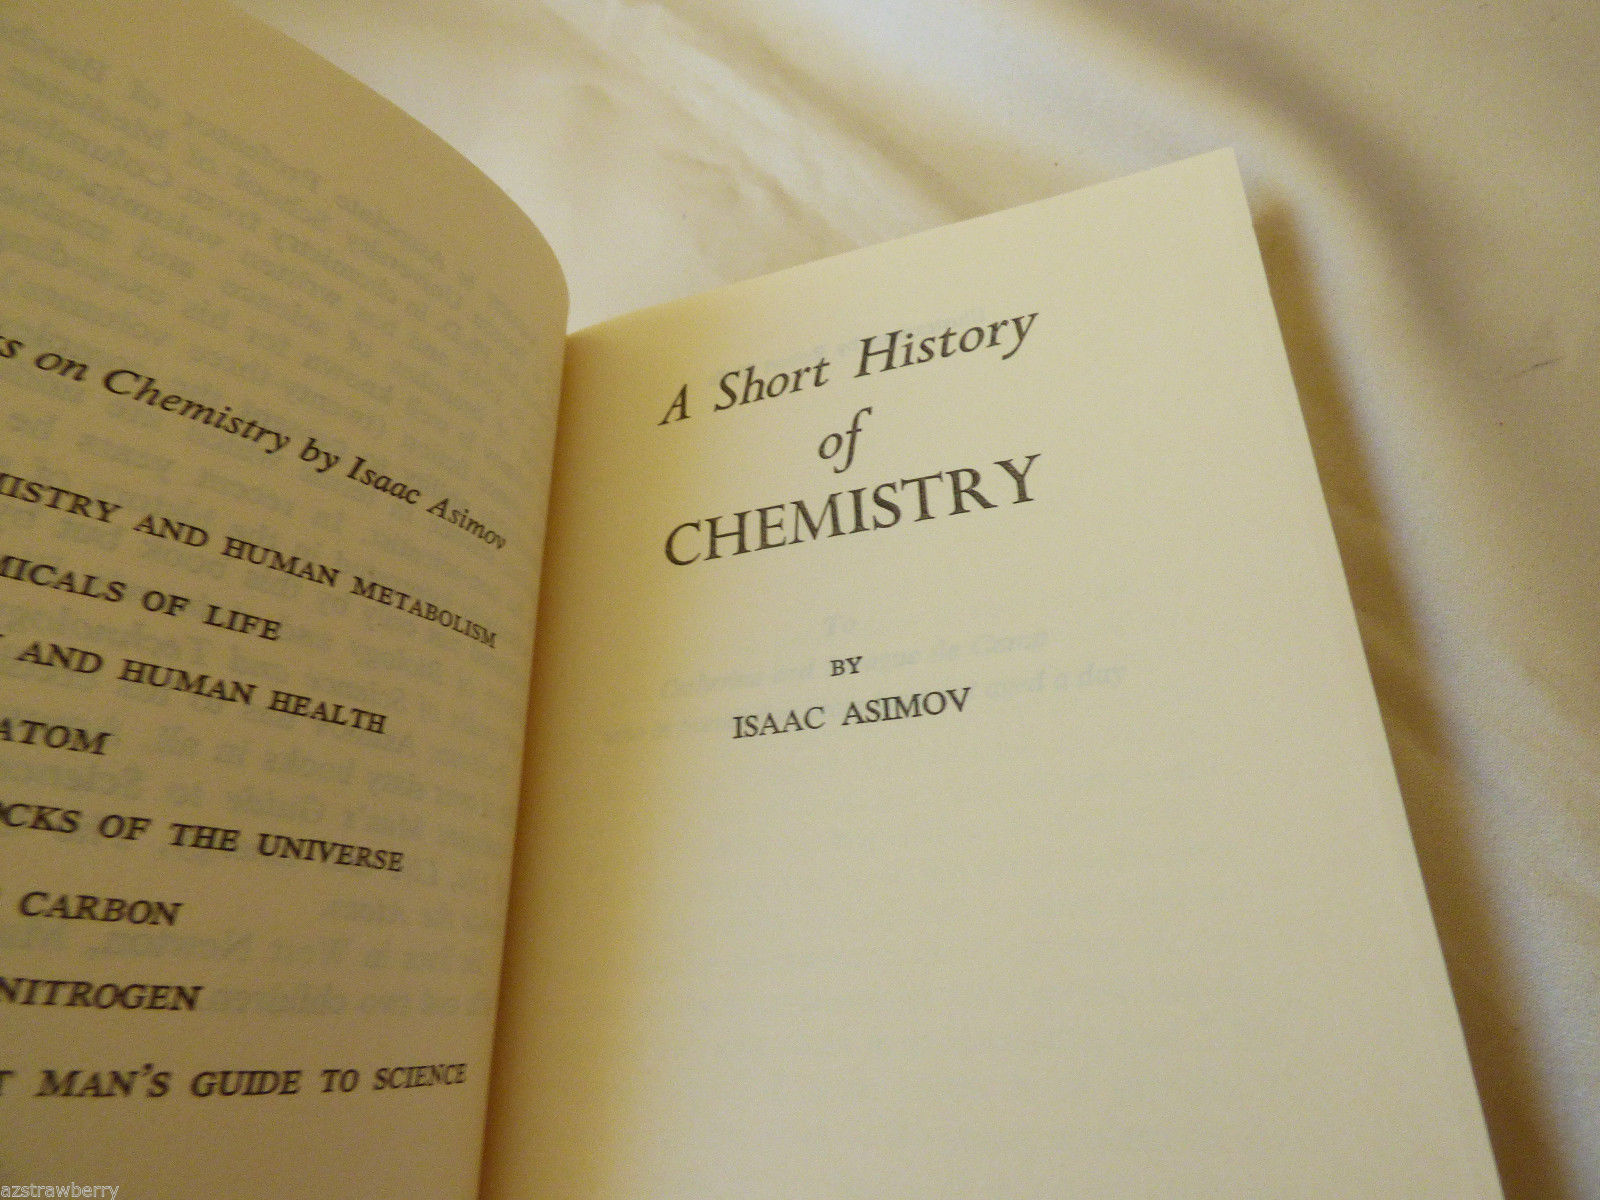 asimov on chemistry by isaac asimov Asimov on chemistry has 192 ratings and 9 reviews thomas ray said: what  asimov did best was to explain science to nonscientists--and he was  breathtaking.